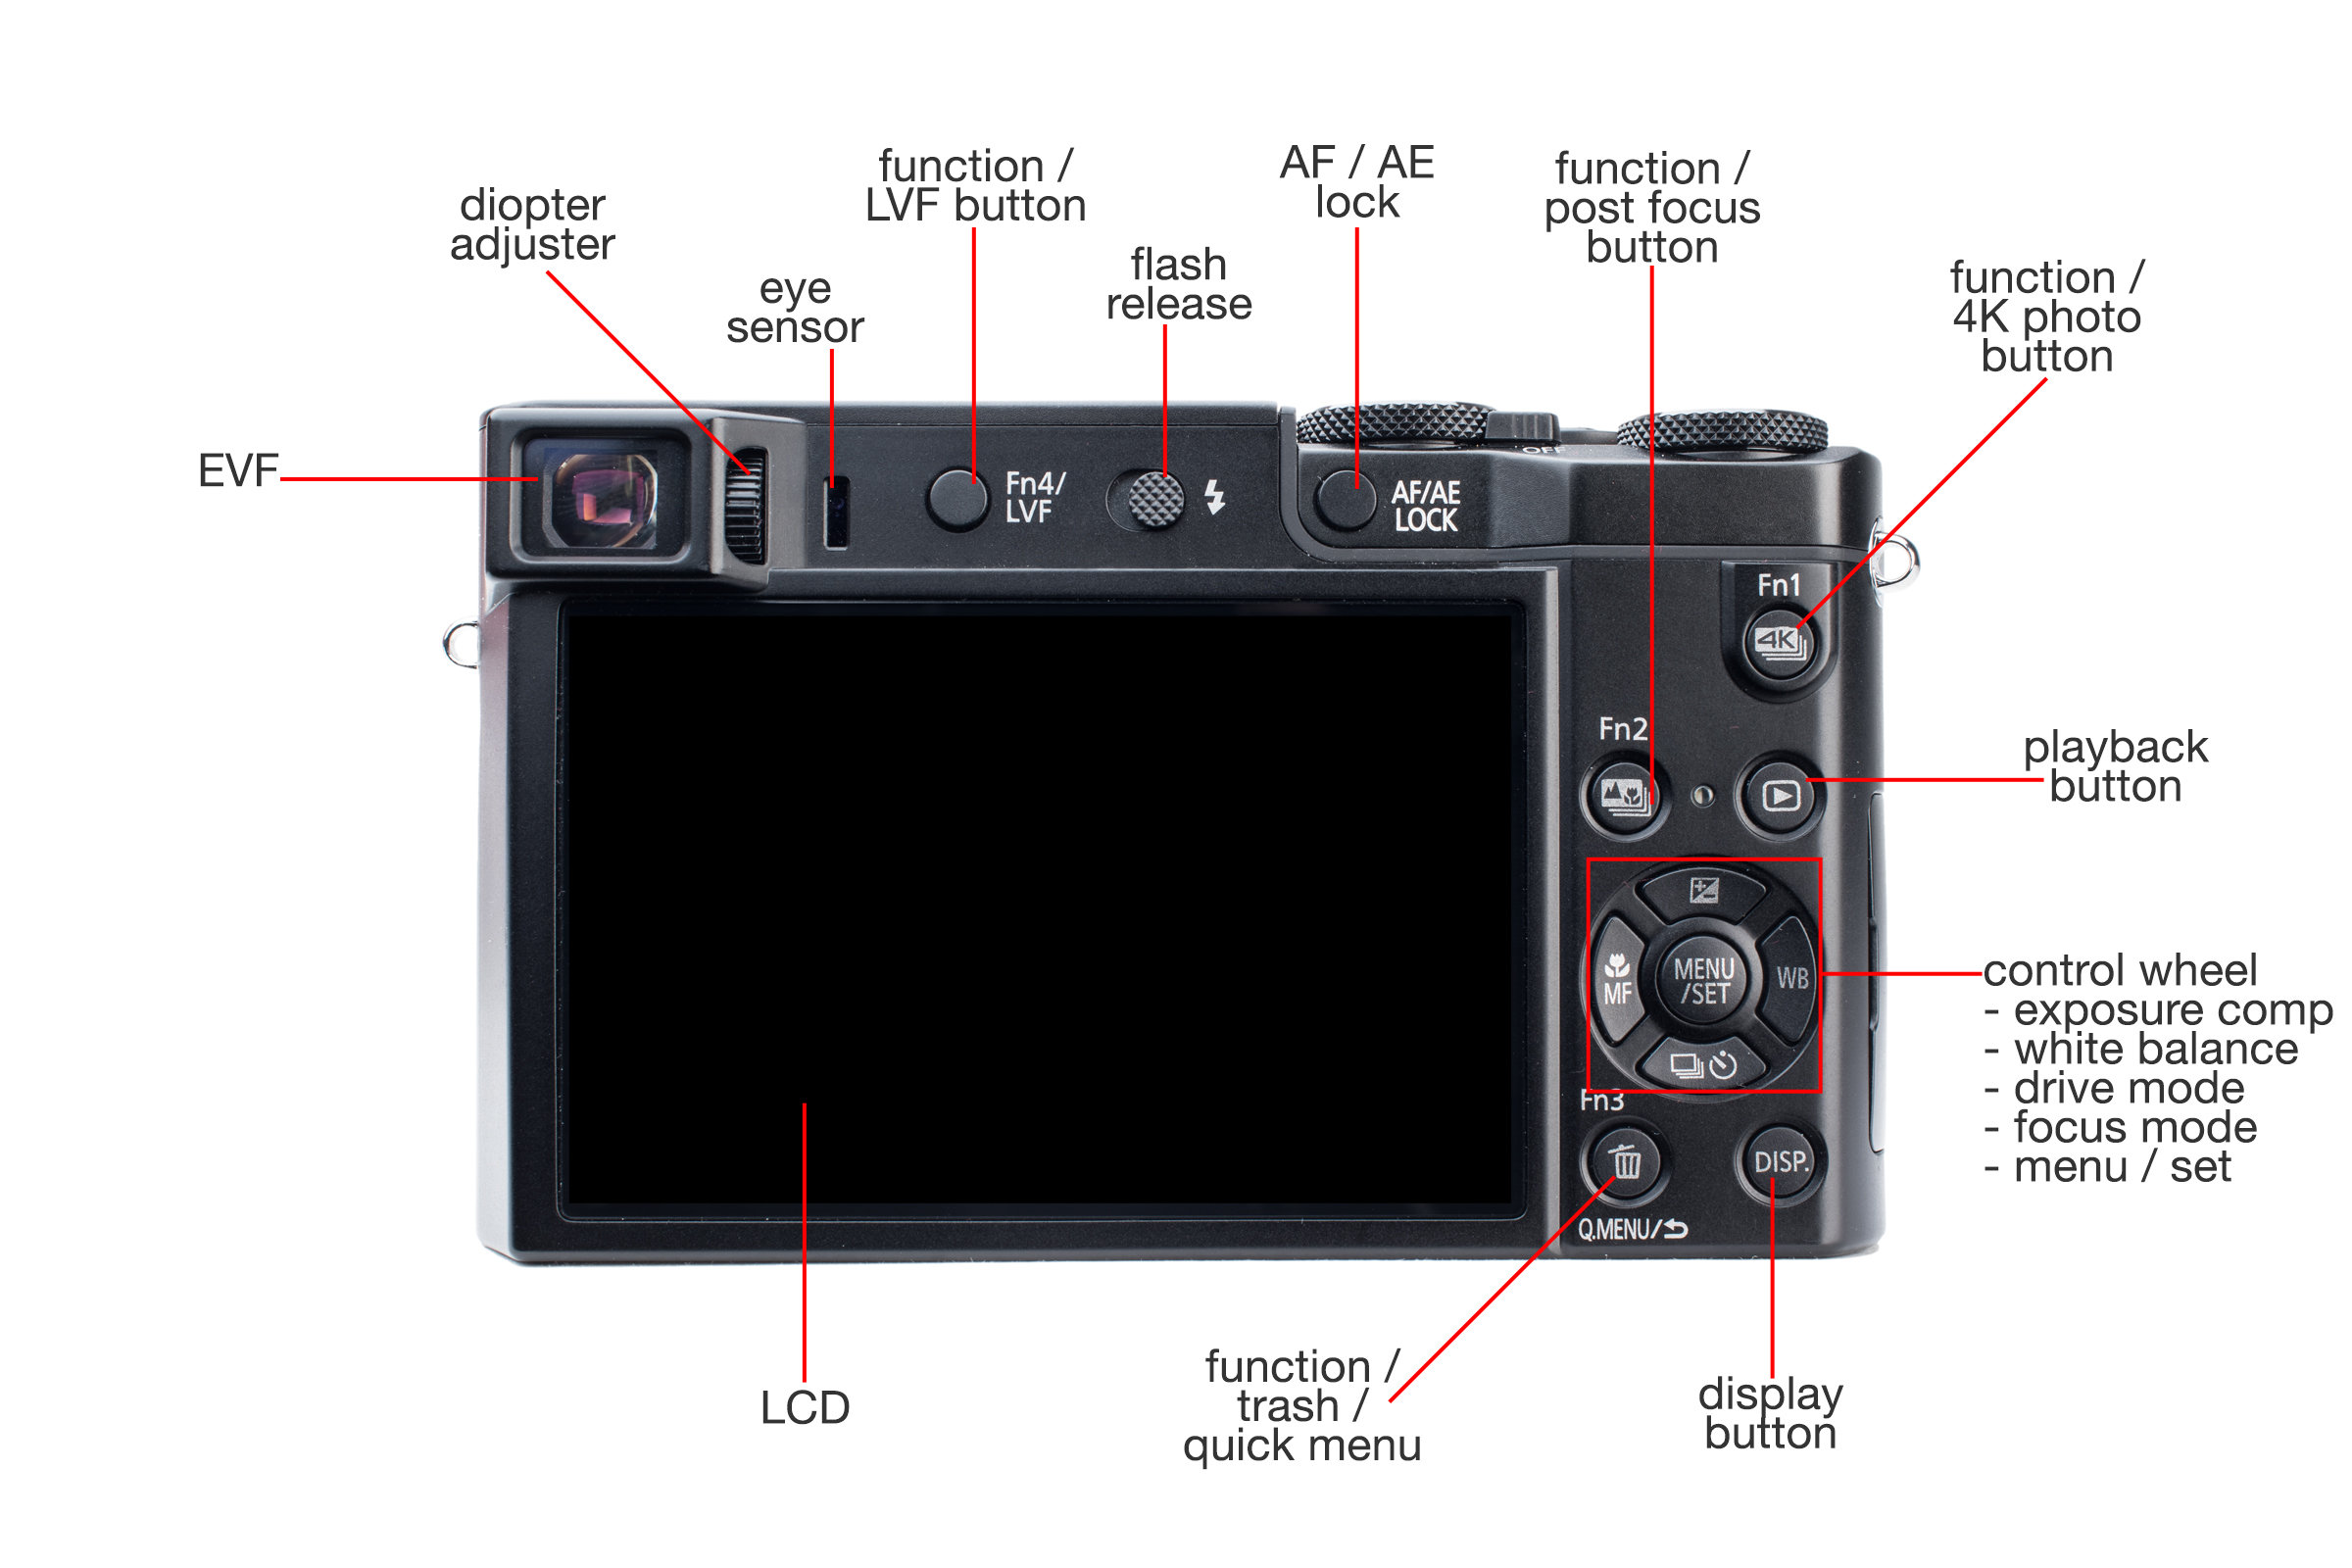 Rear view of the Panasonic Lumix ZS100.